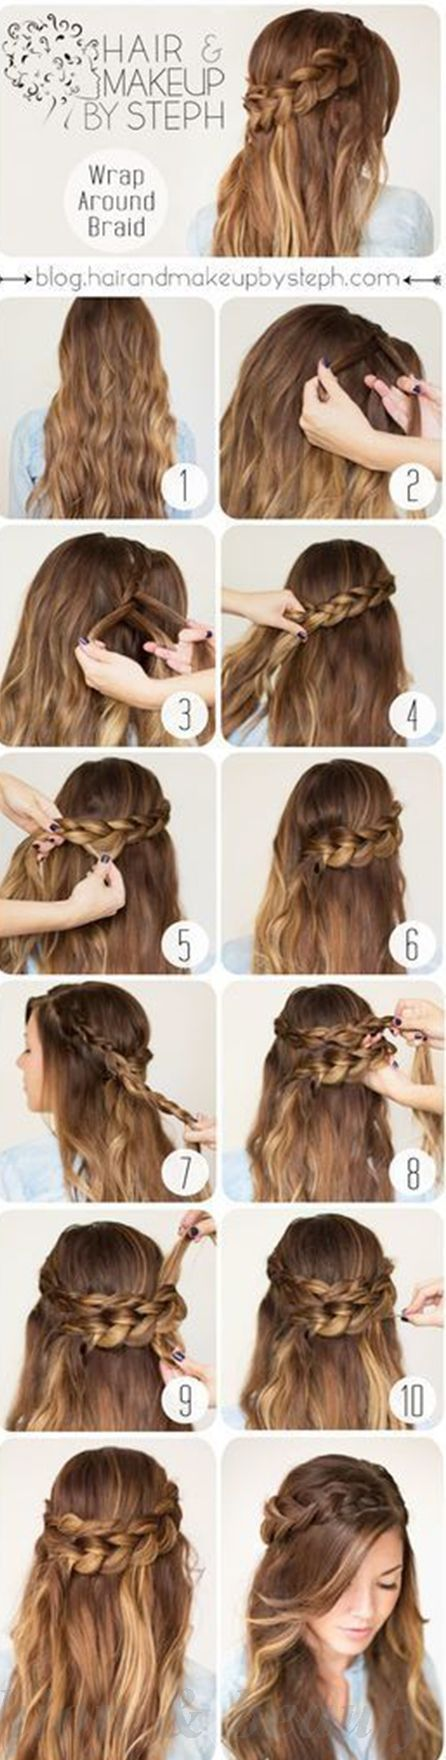 hairstyles for long hair tutorials